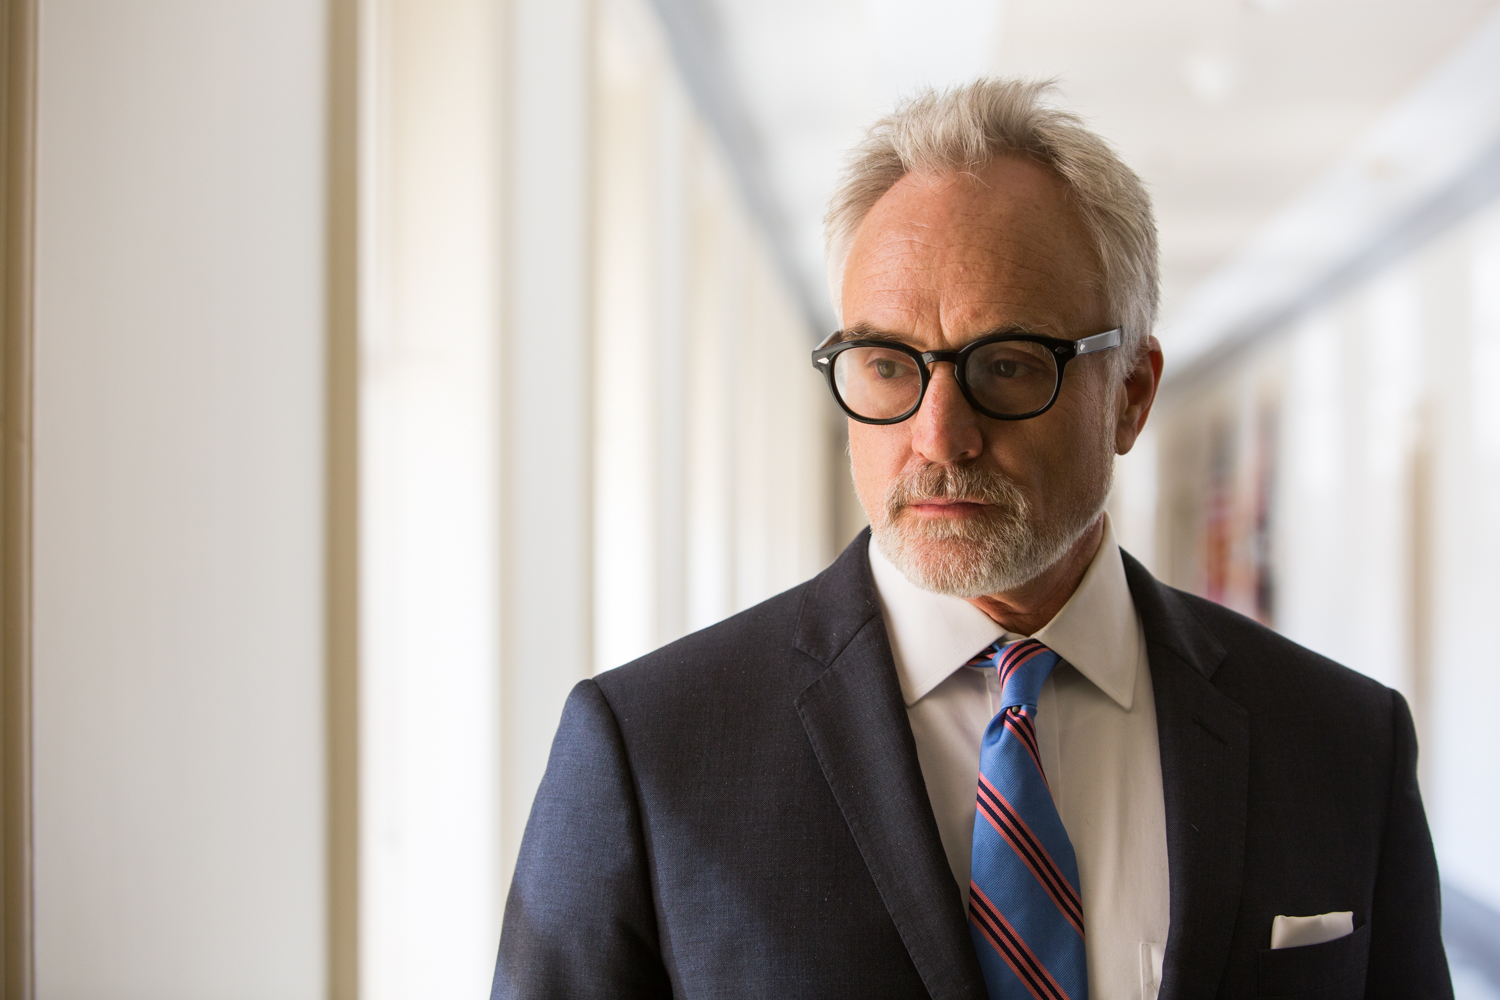 Bradley Whitford poses for a portrait during  National Geographic Channel 's production of  Years of Living Dangerously .